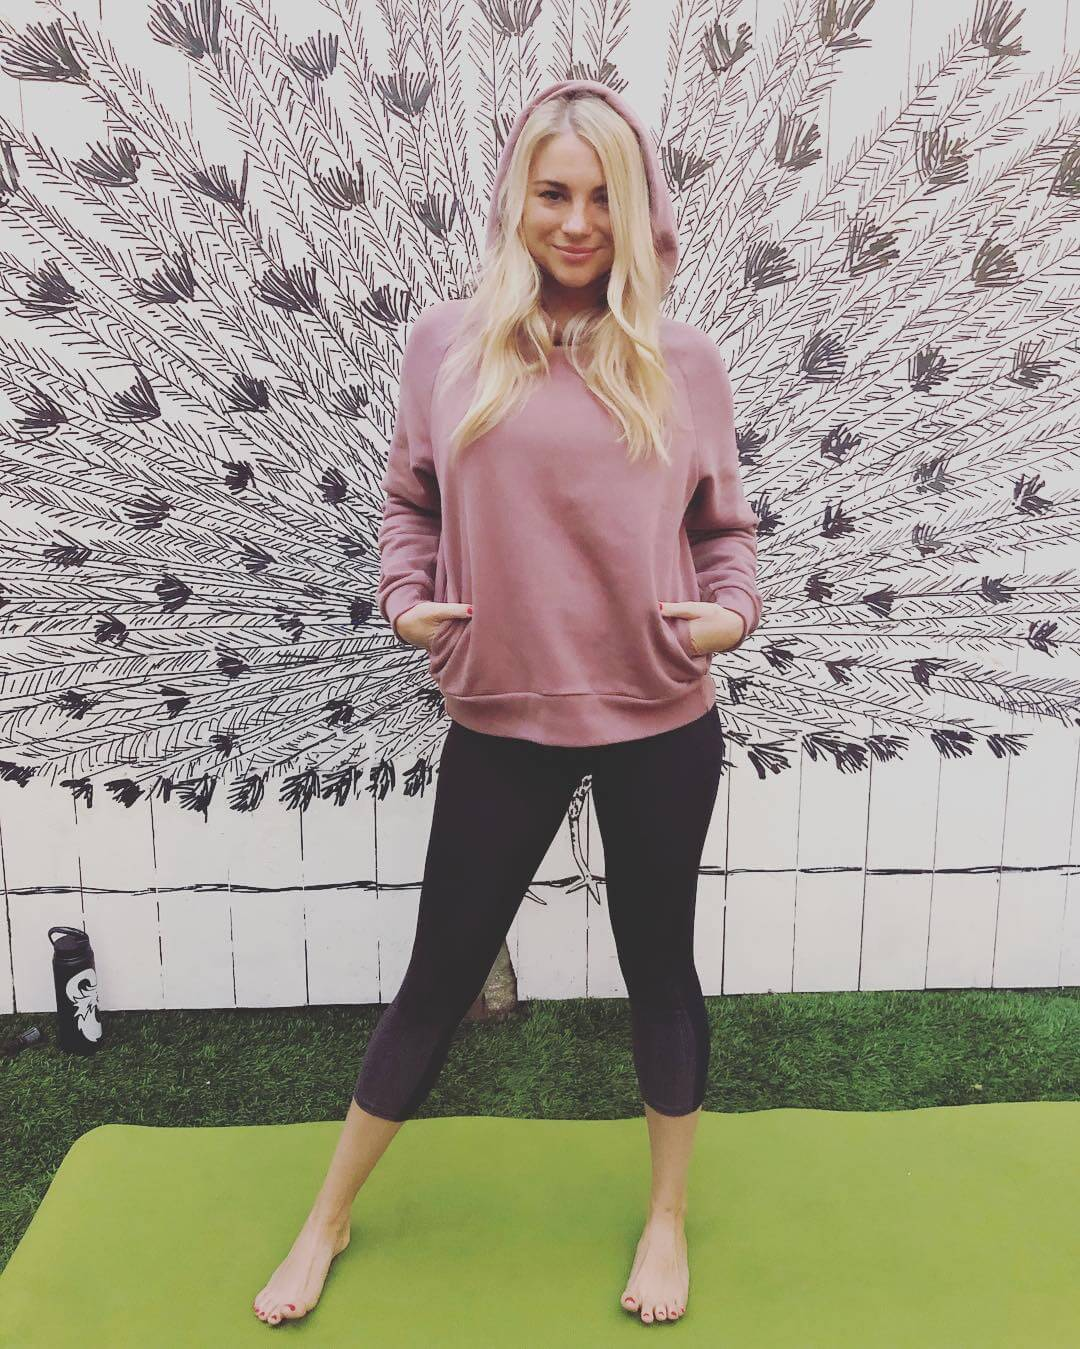 50 Hottest Allie Gonino Photos That Will Make Your Heart Melt - 12thBlog